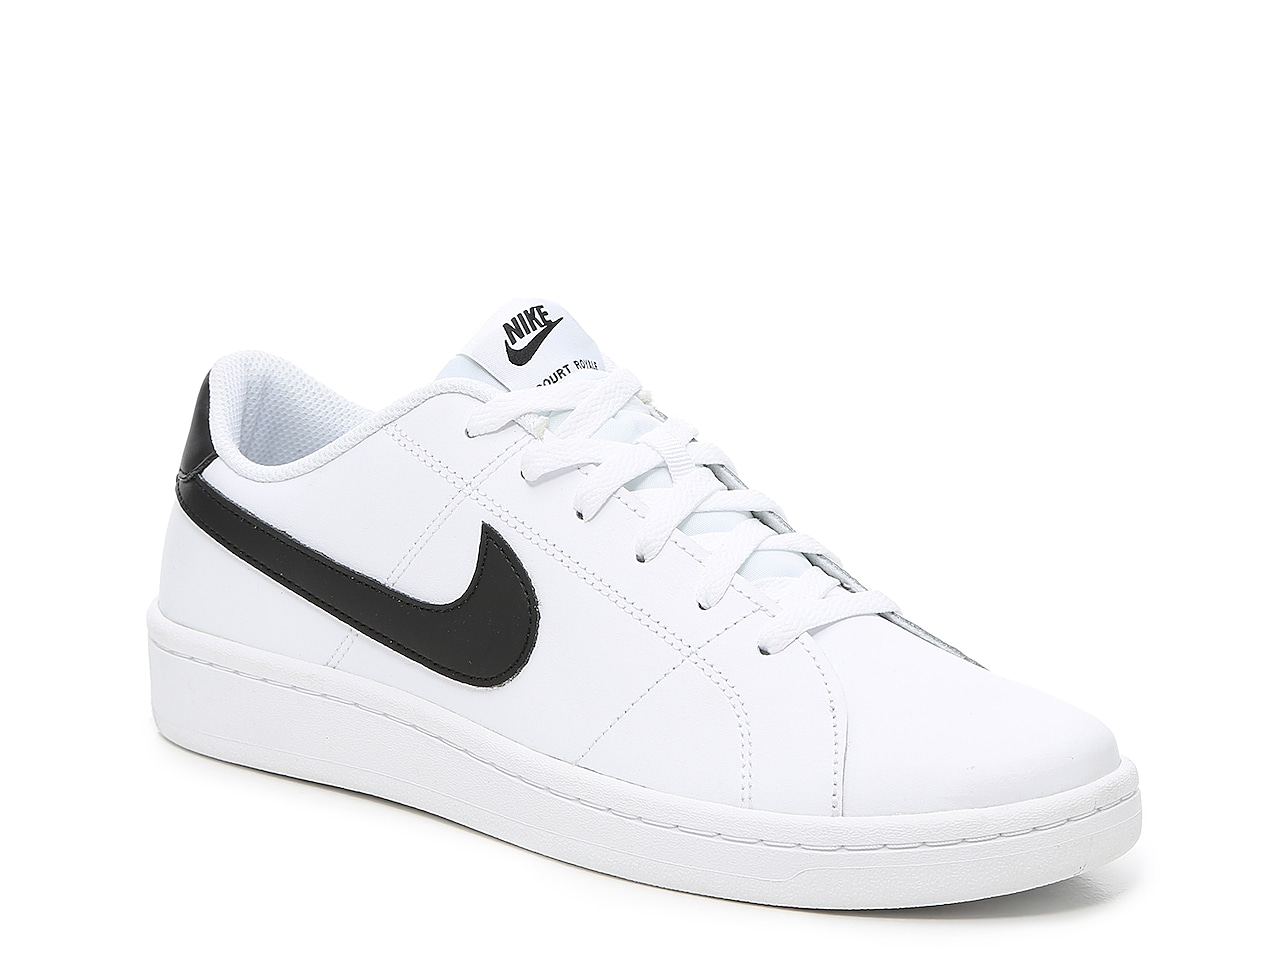 Court Royale 2 Sneaker - Men's